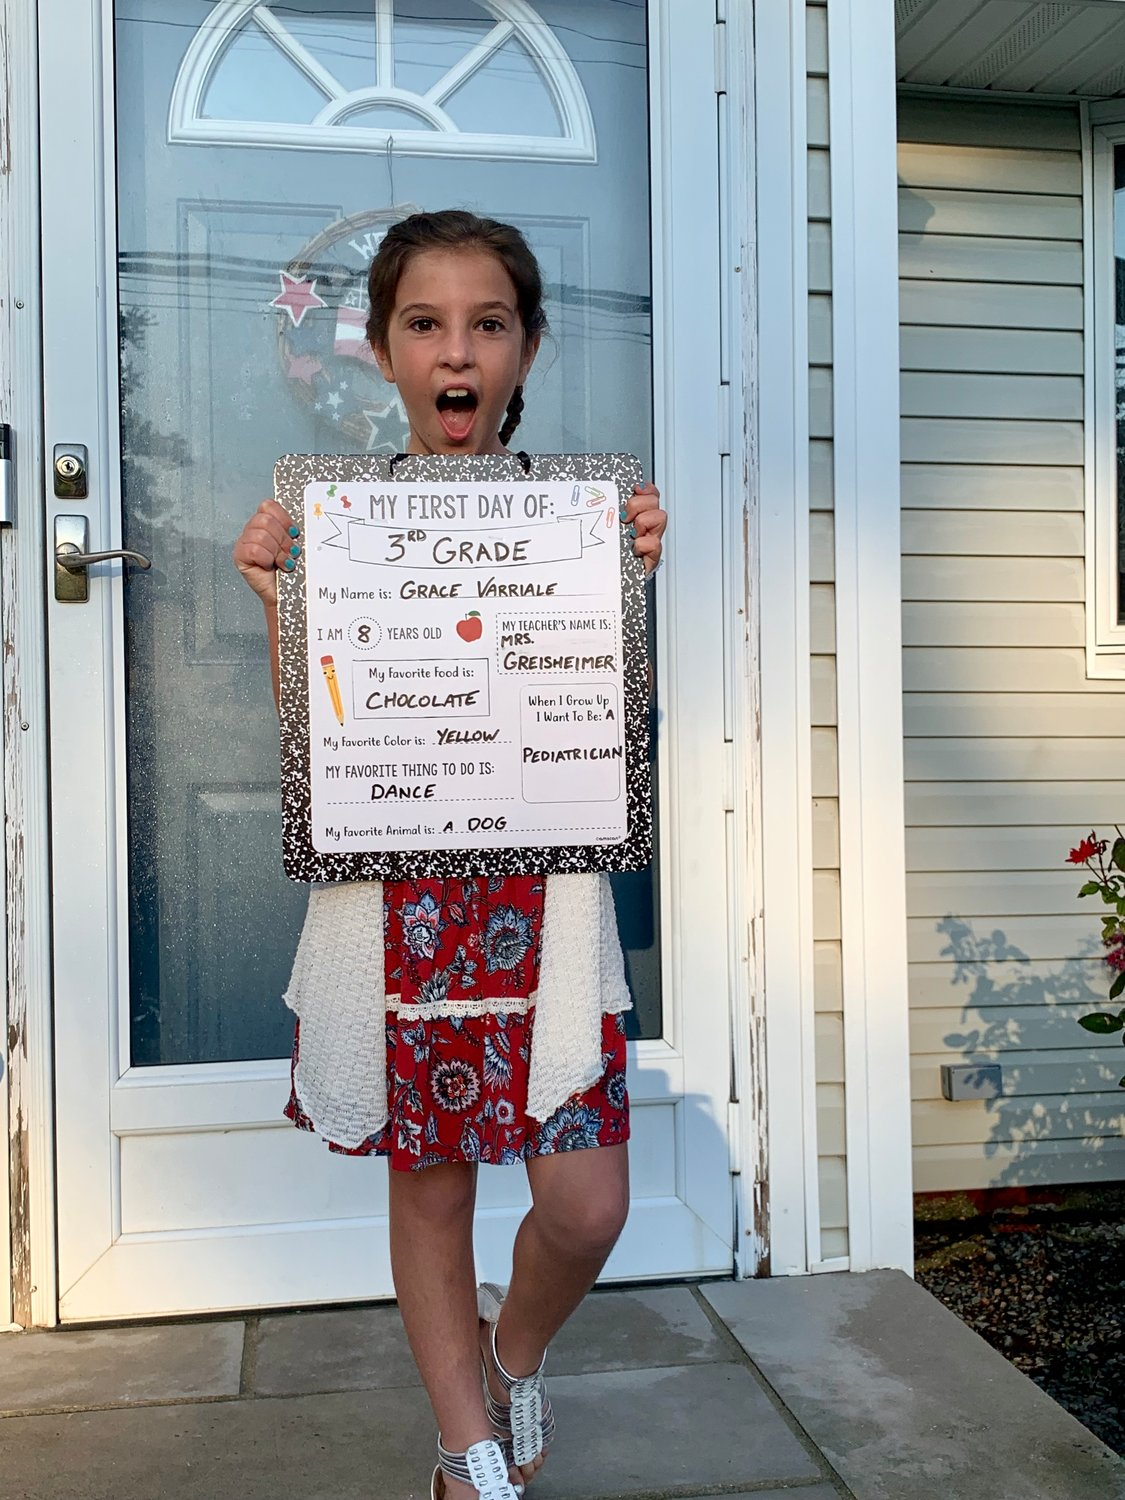 Grace Varriale was excited to start third grade at Oceanside School No. 4.